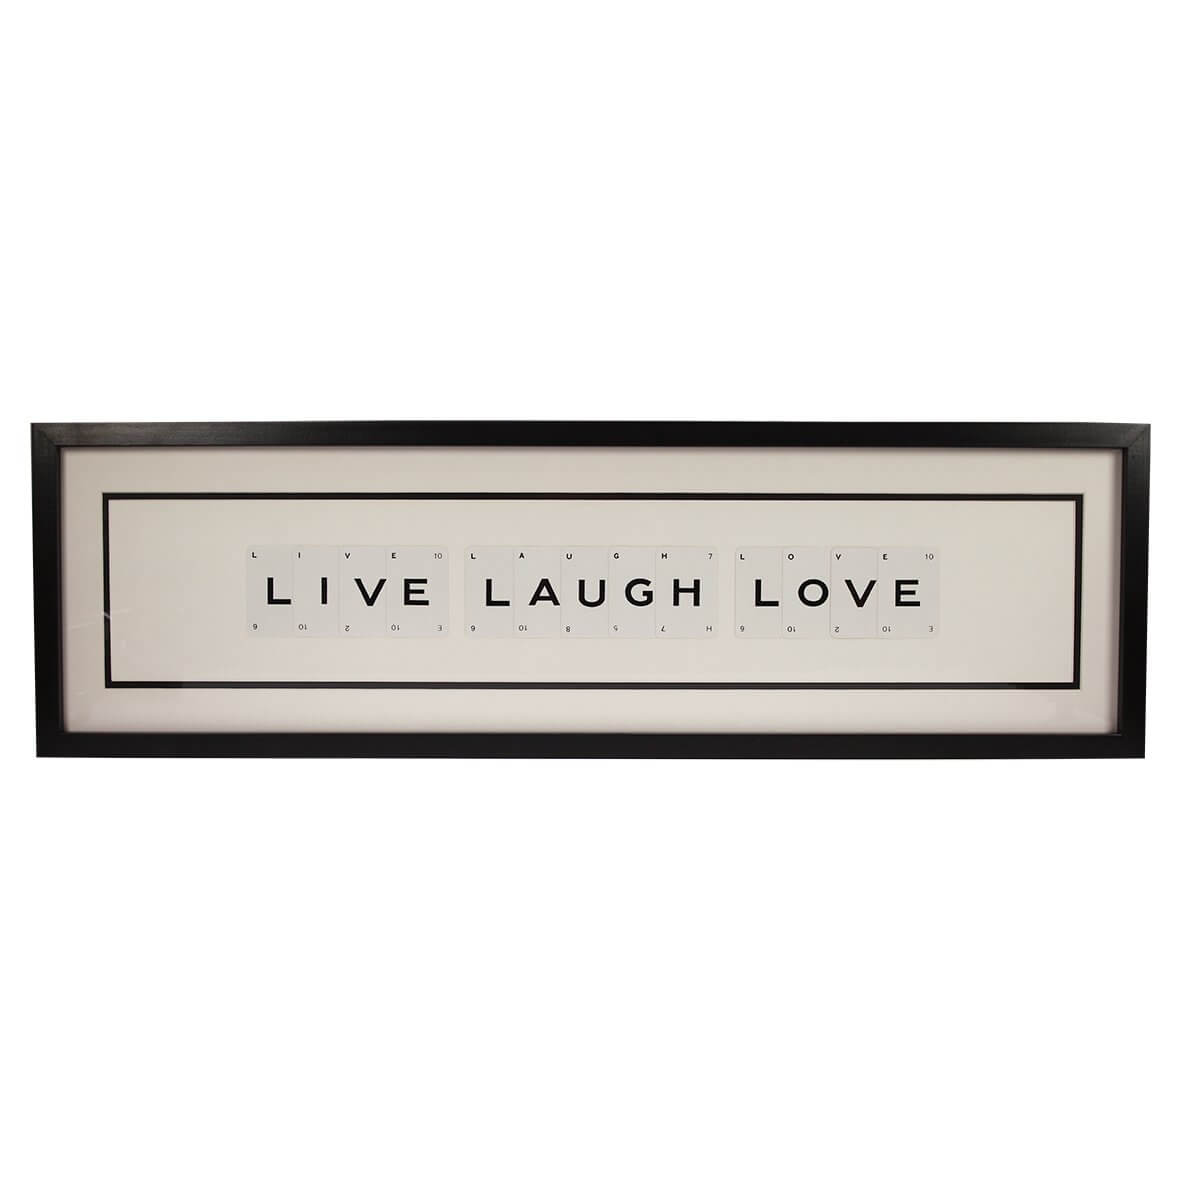 'Live Laugh Love' Vintage Playing Card Frame